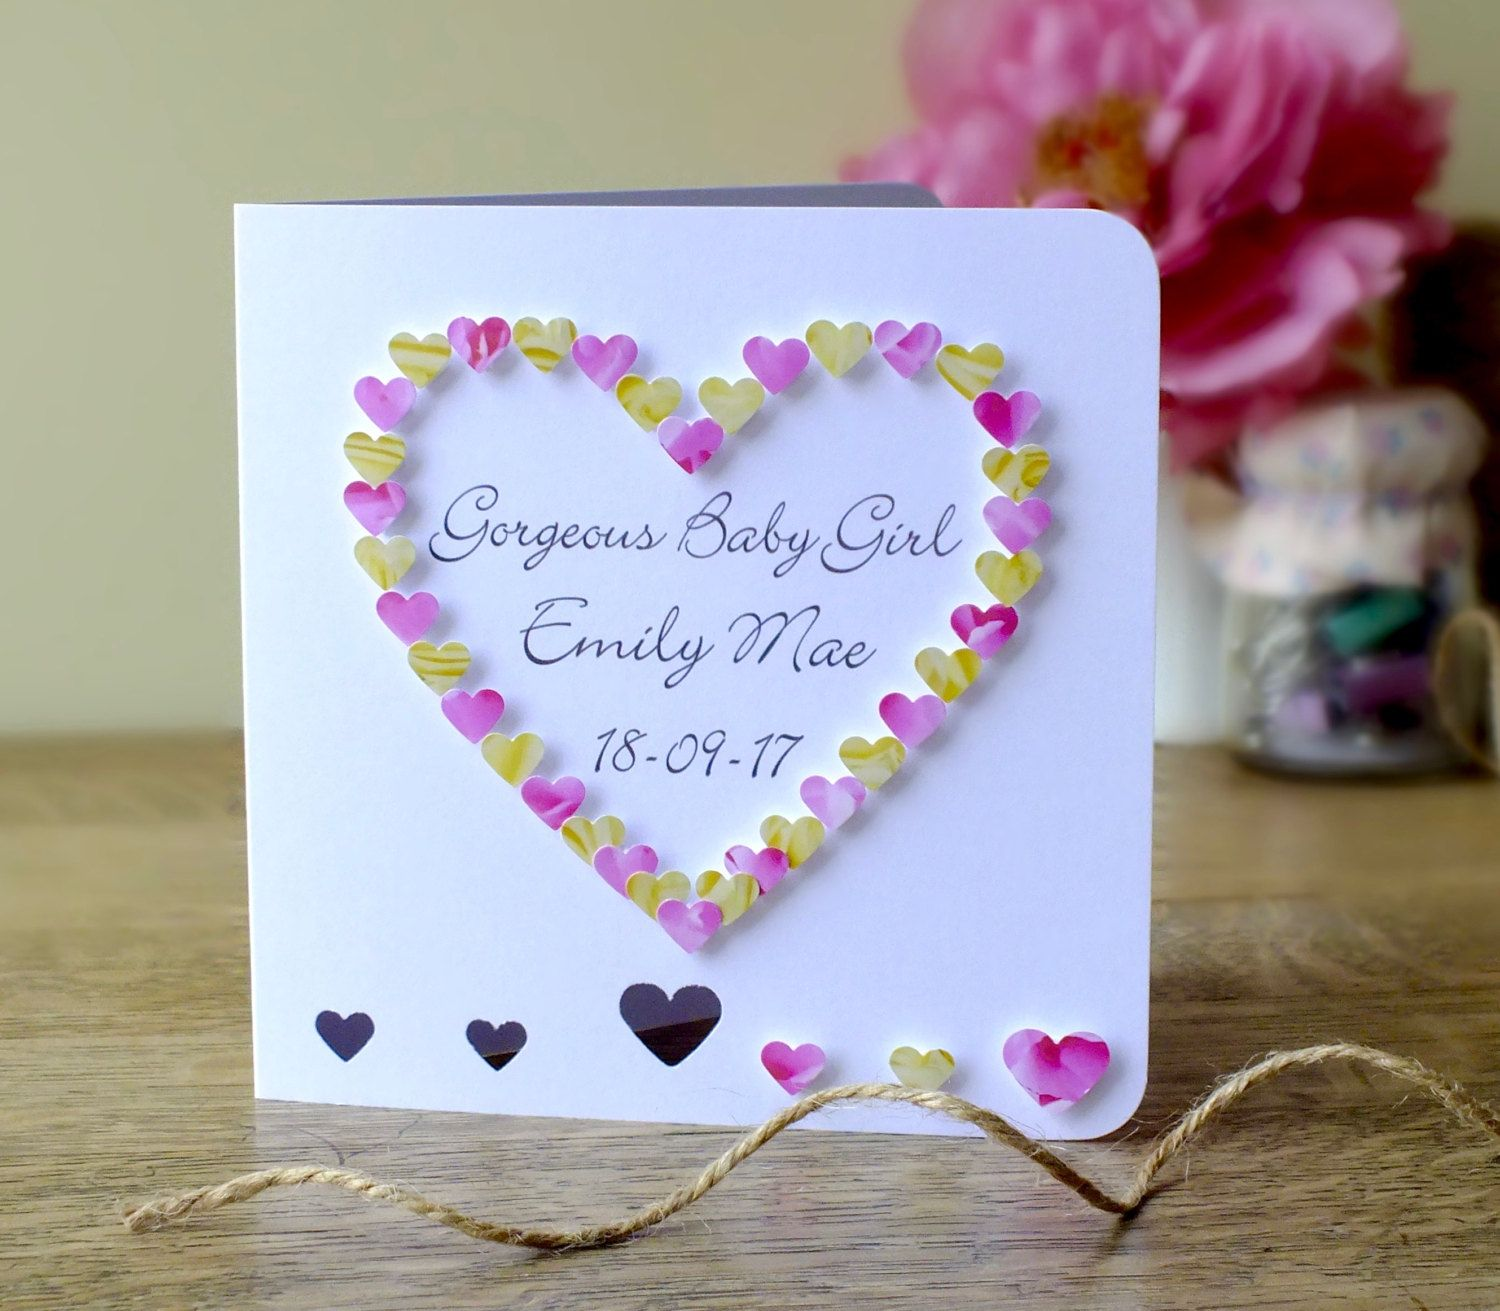 handmade 3d new baby girl card personalised name and date gorgeous baby girl congratulations card new baby card personalized bhe28 by cardsbygaynor